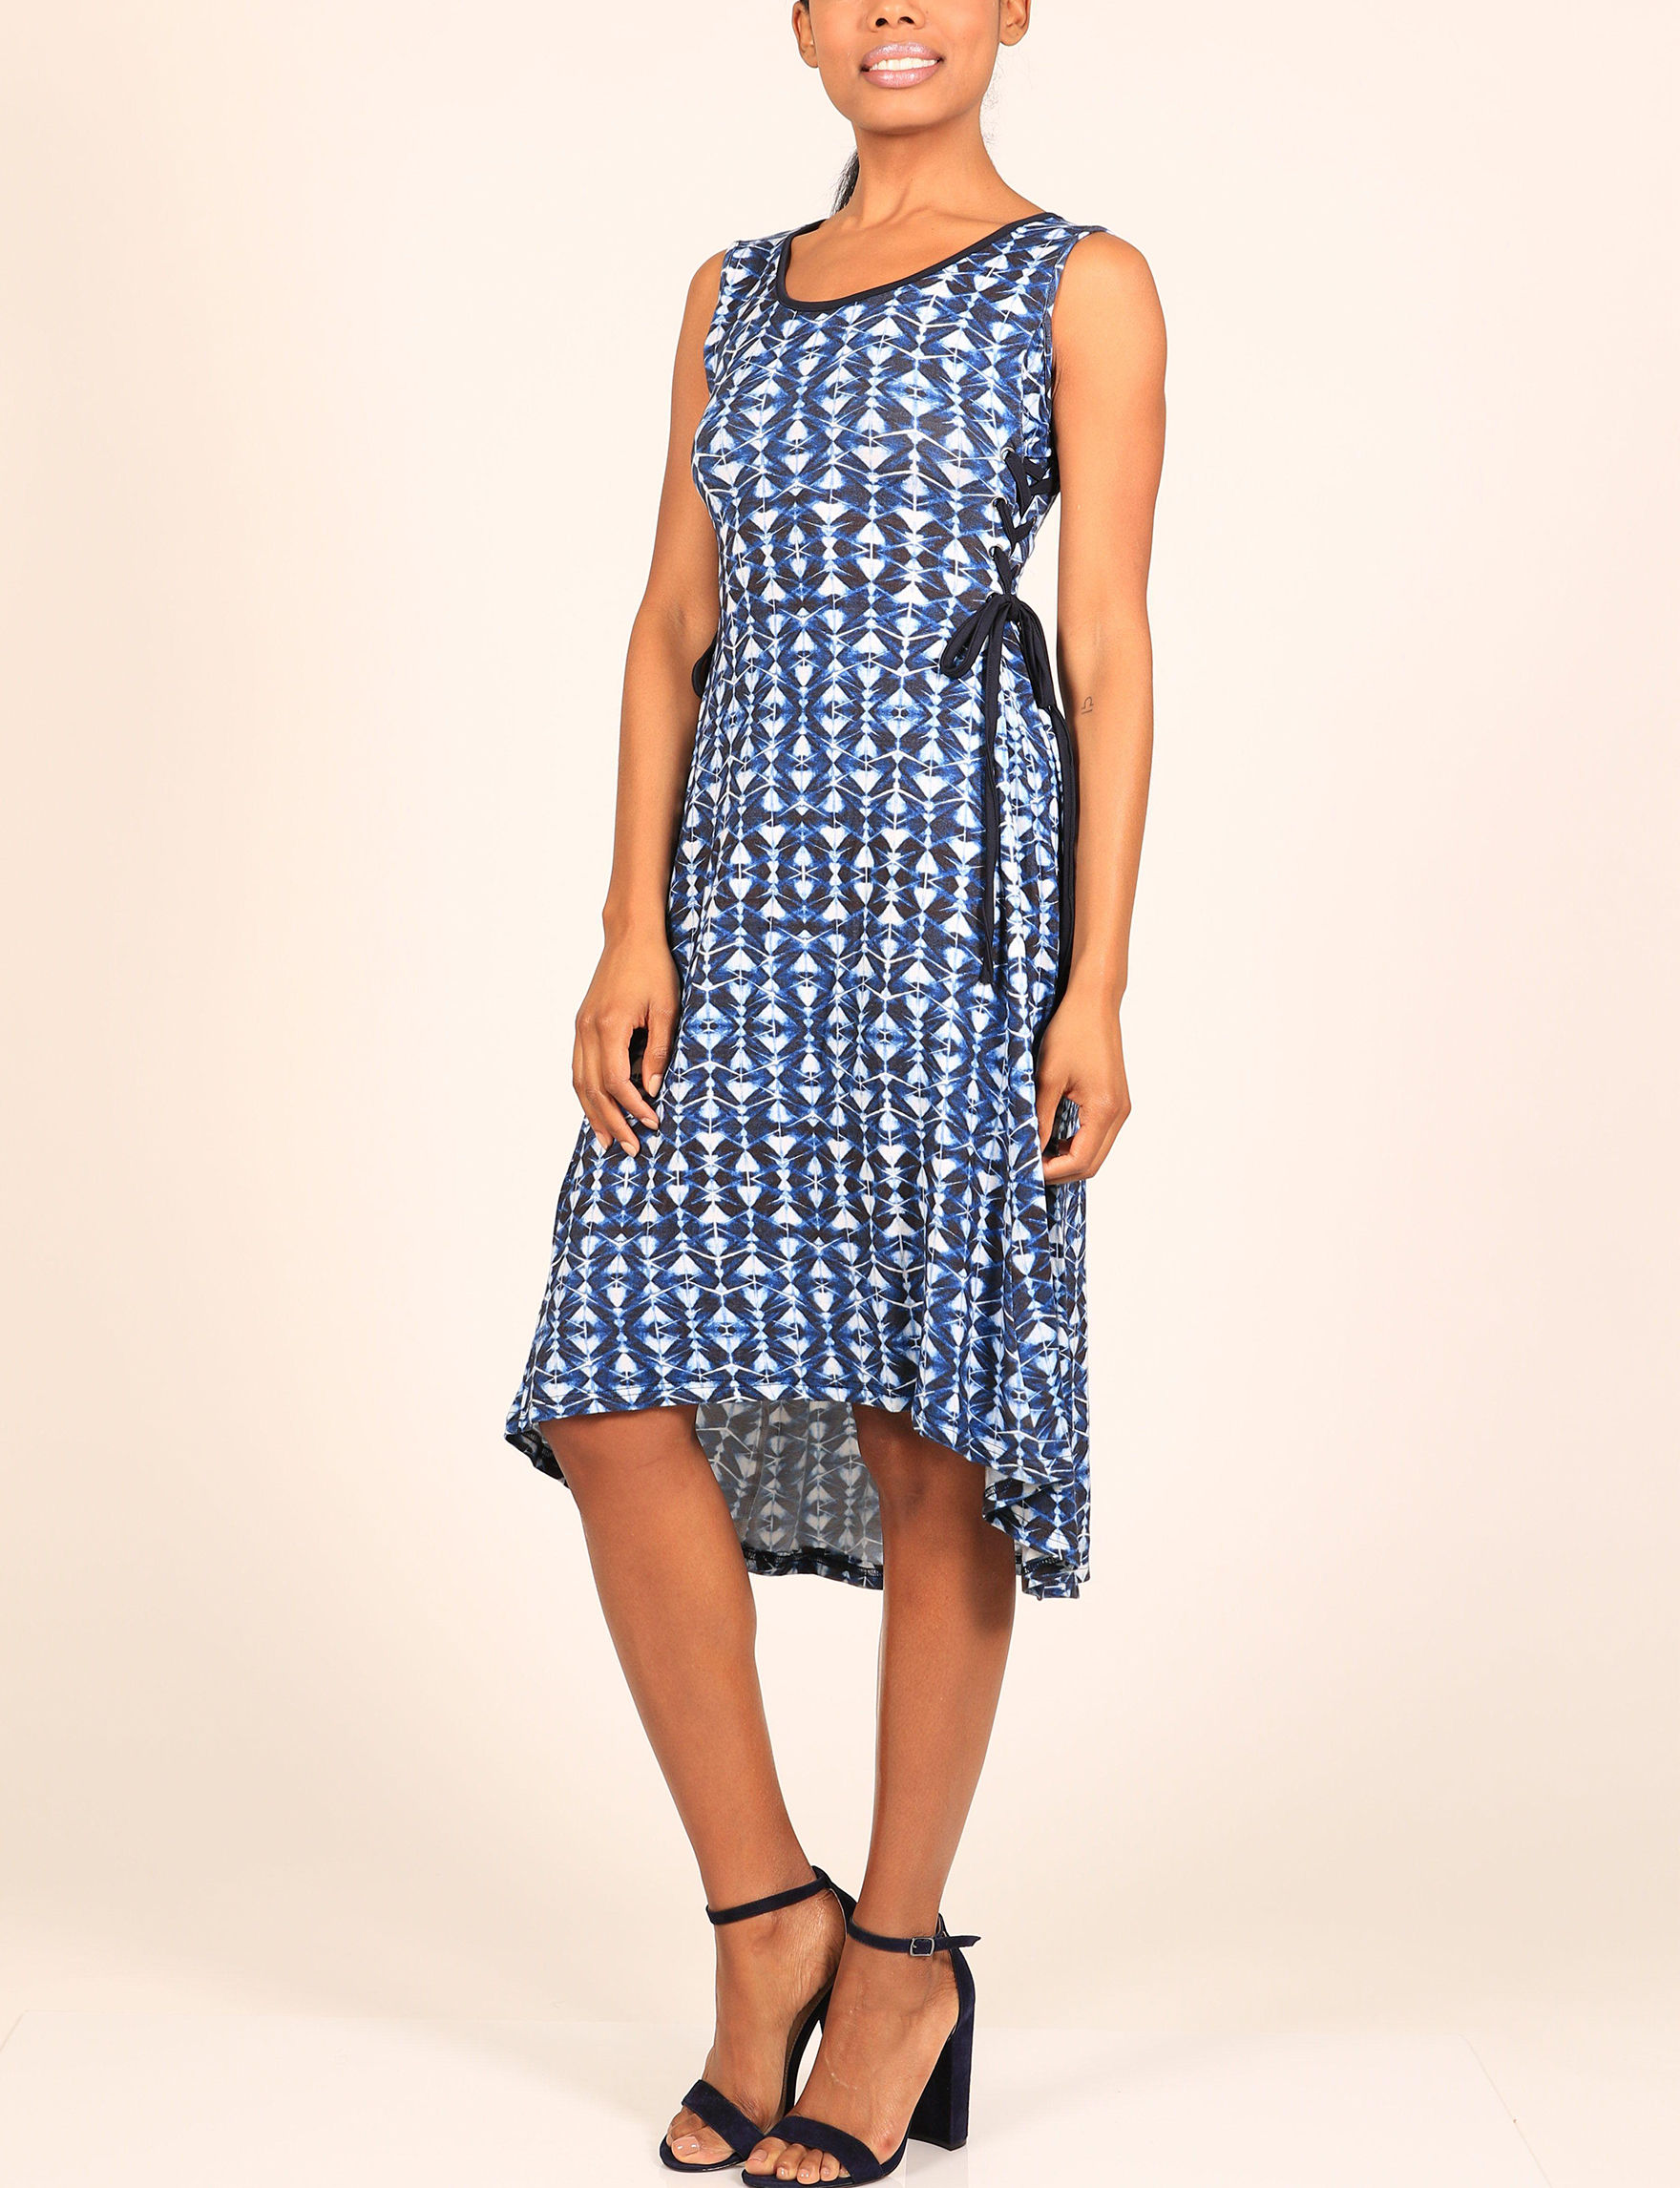 Skyes The Limit Blue Everyday & Casual Fit & Flare Dresses